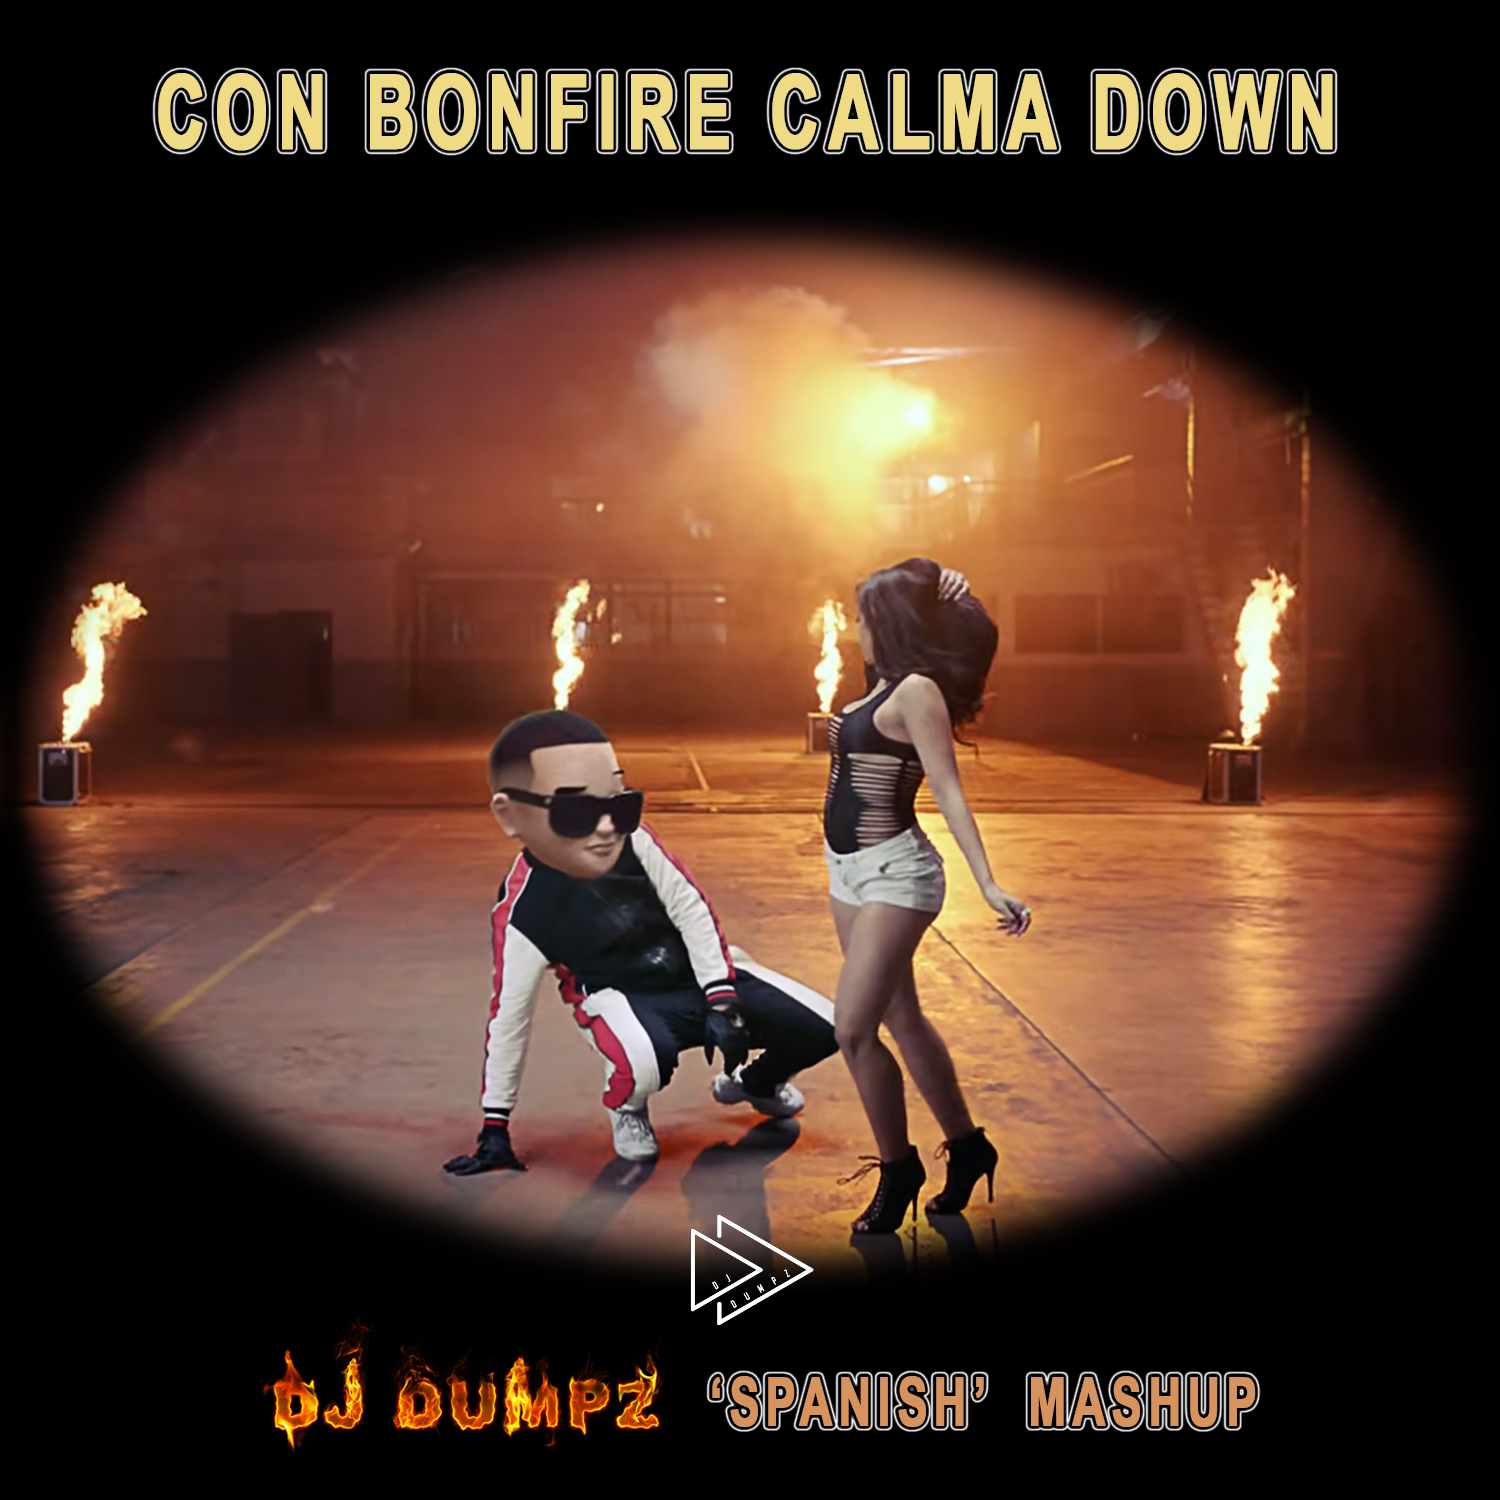 Daddy Yankee ft Snow vs Chainsmokers vs Knife Party - Con Bonfire Calma Down (DJ Dumpz Mashup)